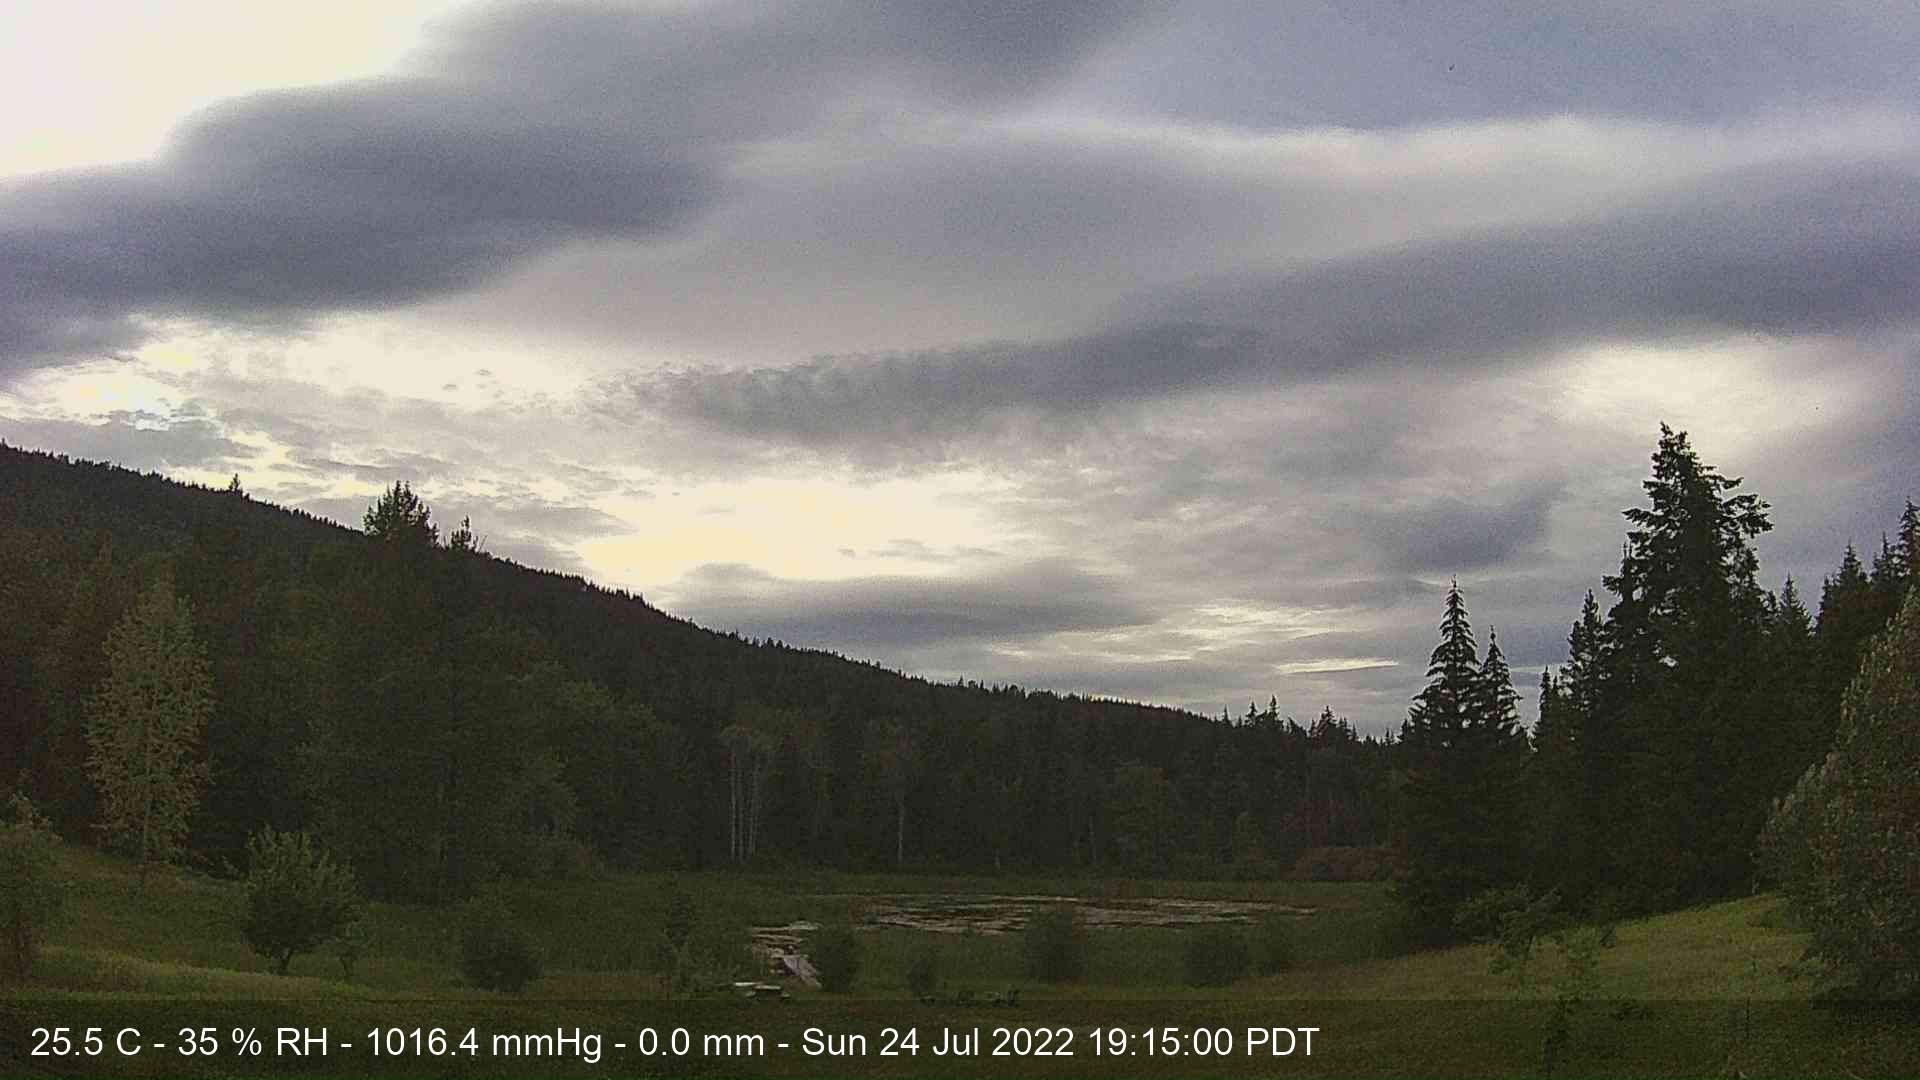 Boulder Moutain - Chinnok Cove Cam